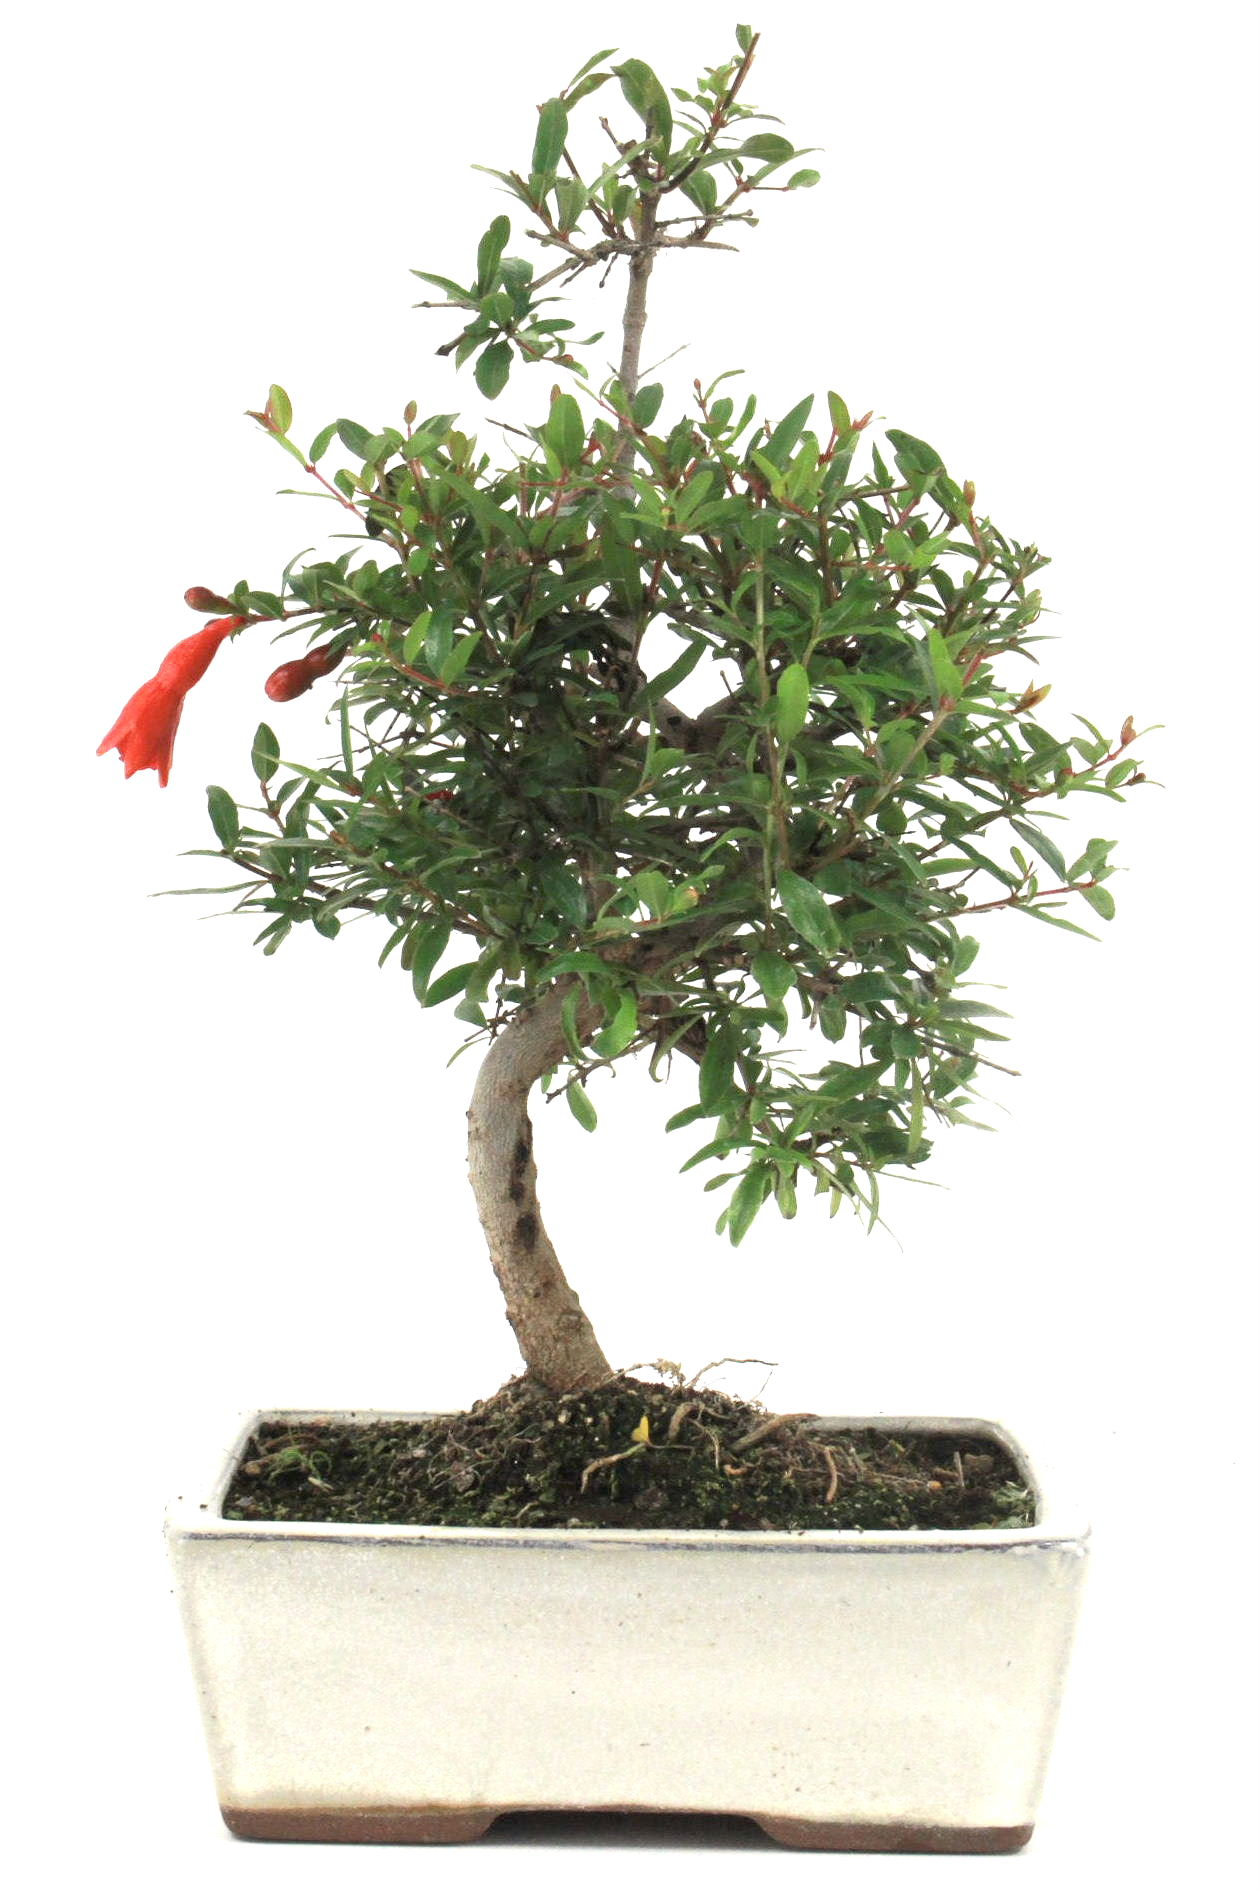 Granatapfel bonsai 25 30 cm 168 bei oyaki bonsai kaufen for Bonsai onlineshop